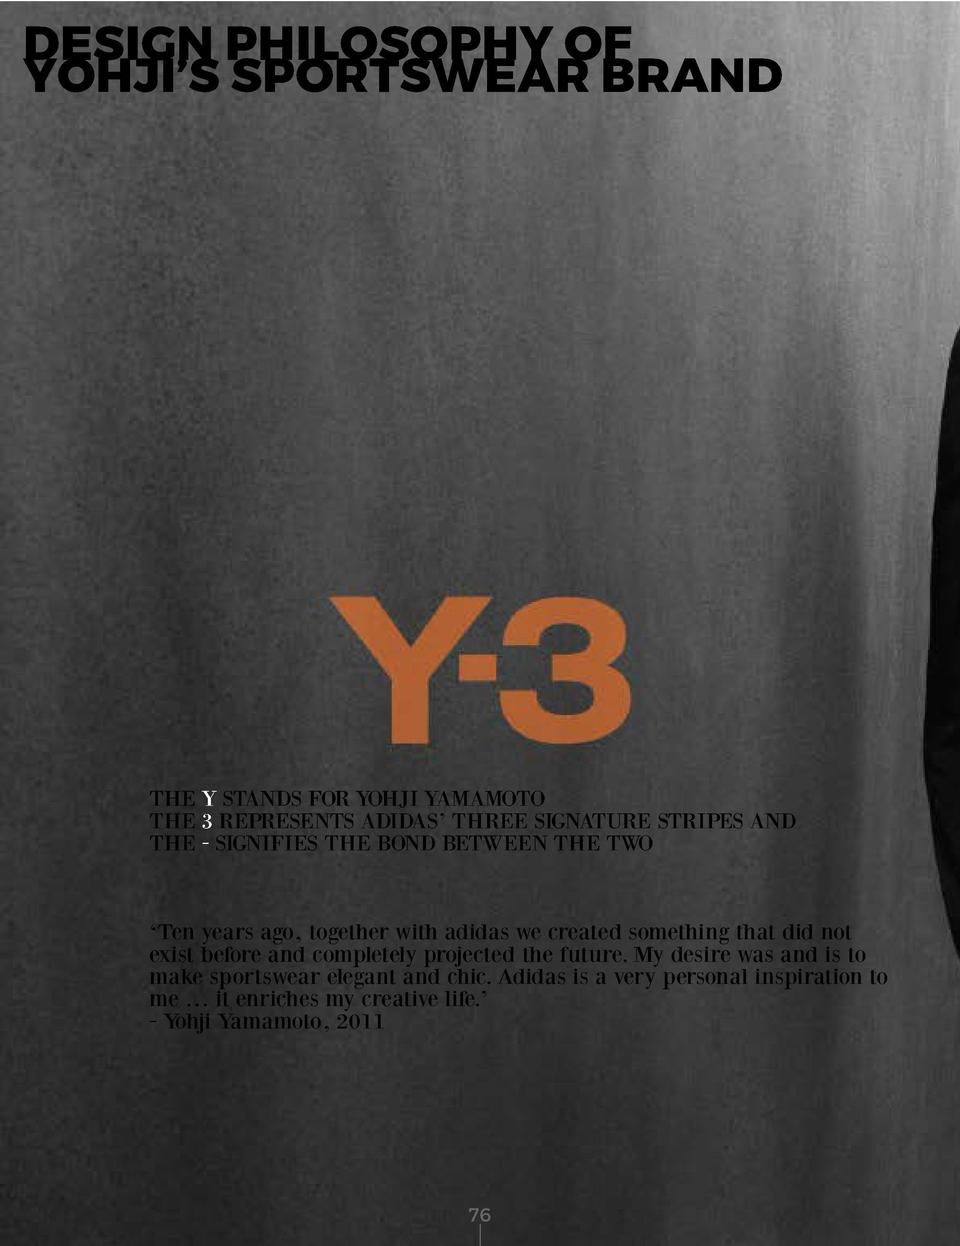 DESIGN PHILOSOPHY OF YOHJI   S SPORTSWEAR BRAND  THE Y STANDS FOR YOHJI YAMAMOTO THE 3 REPRESENTS ADIDAS    THREE SIGNATUR...